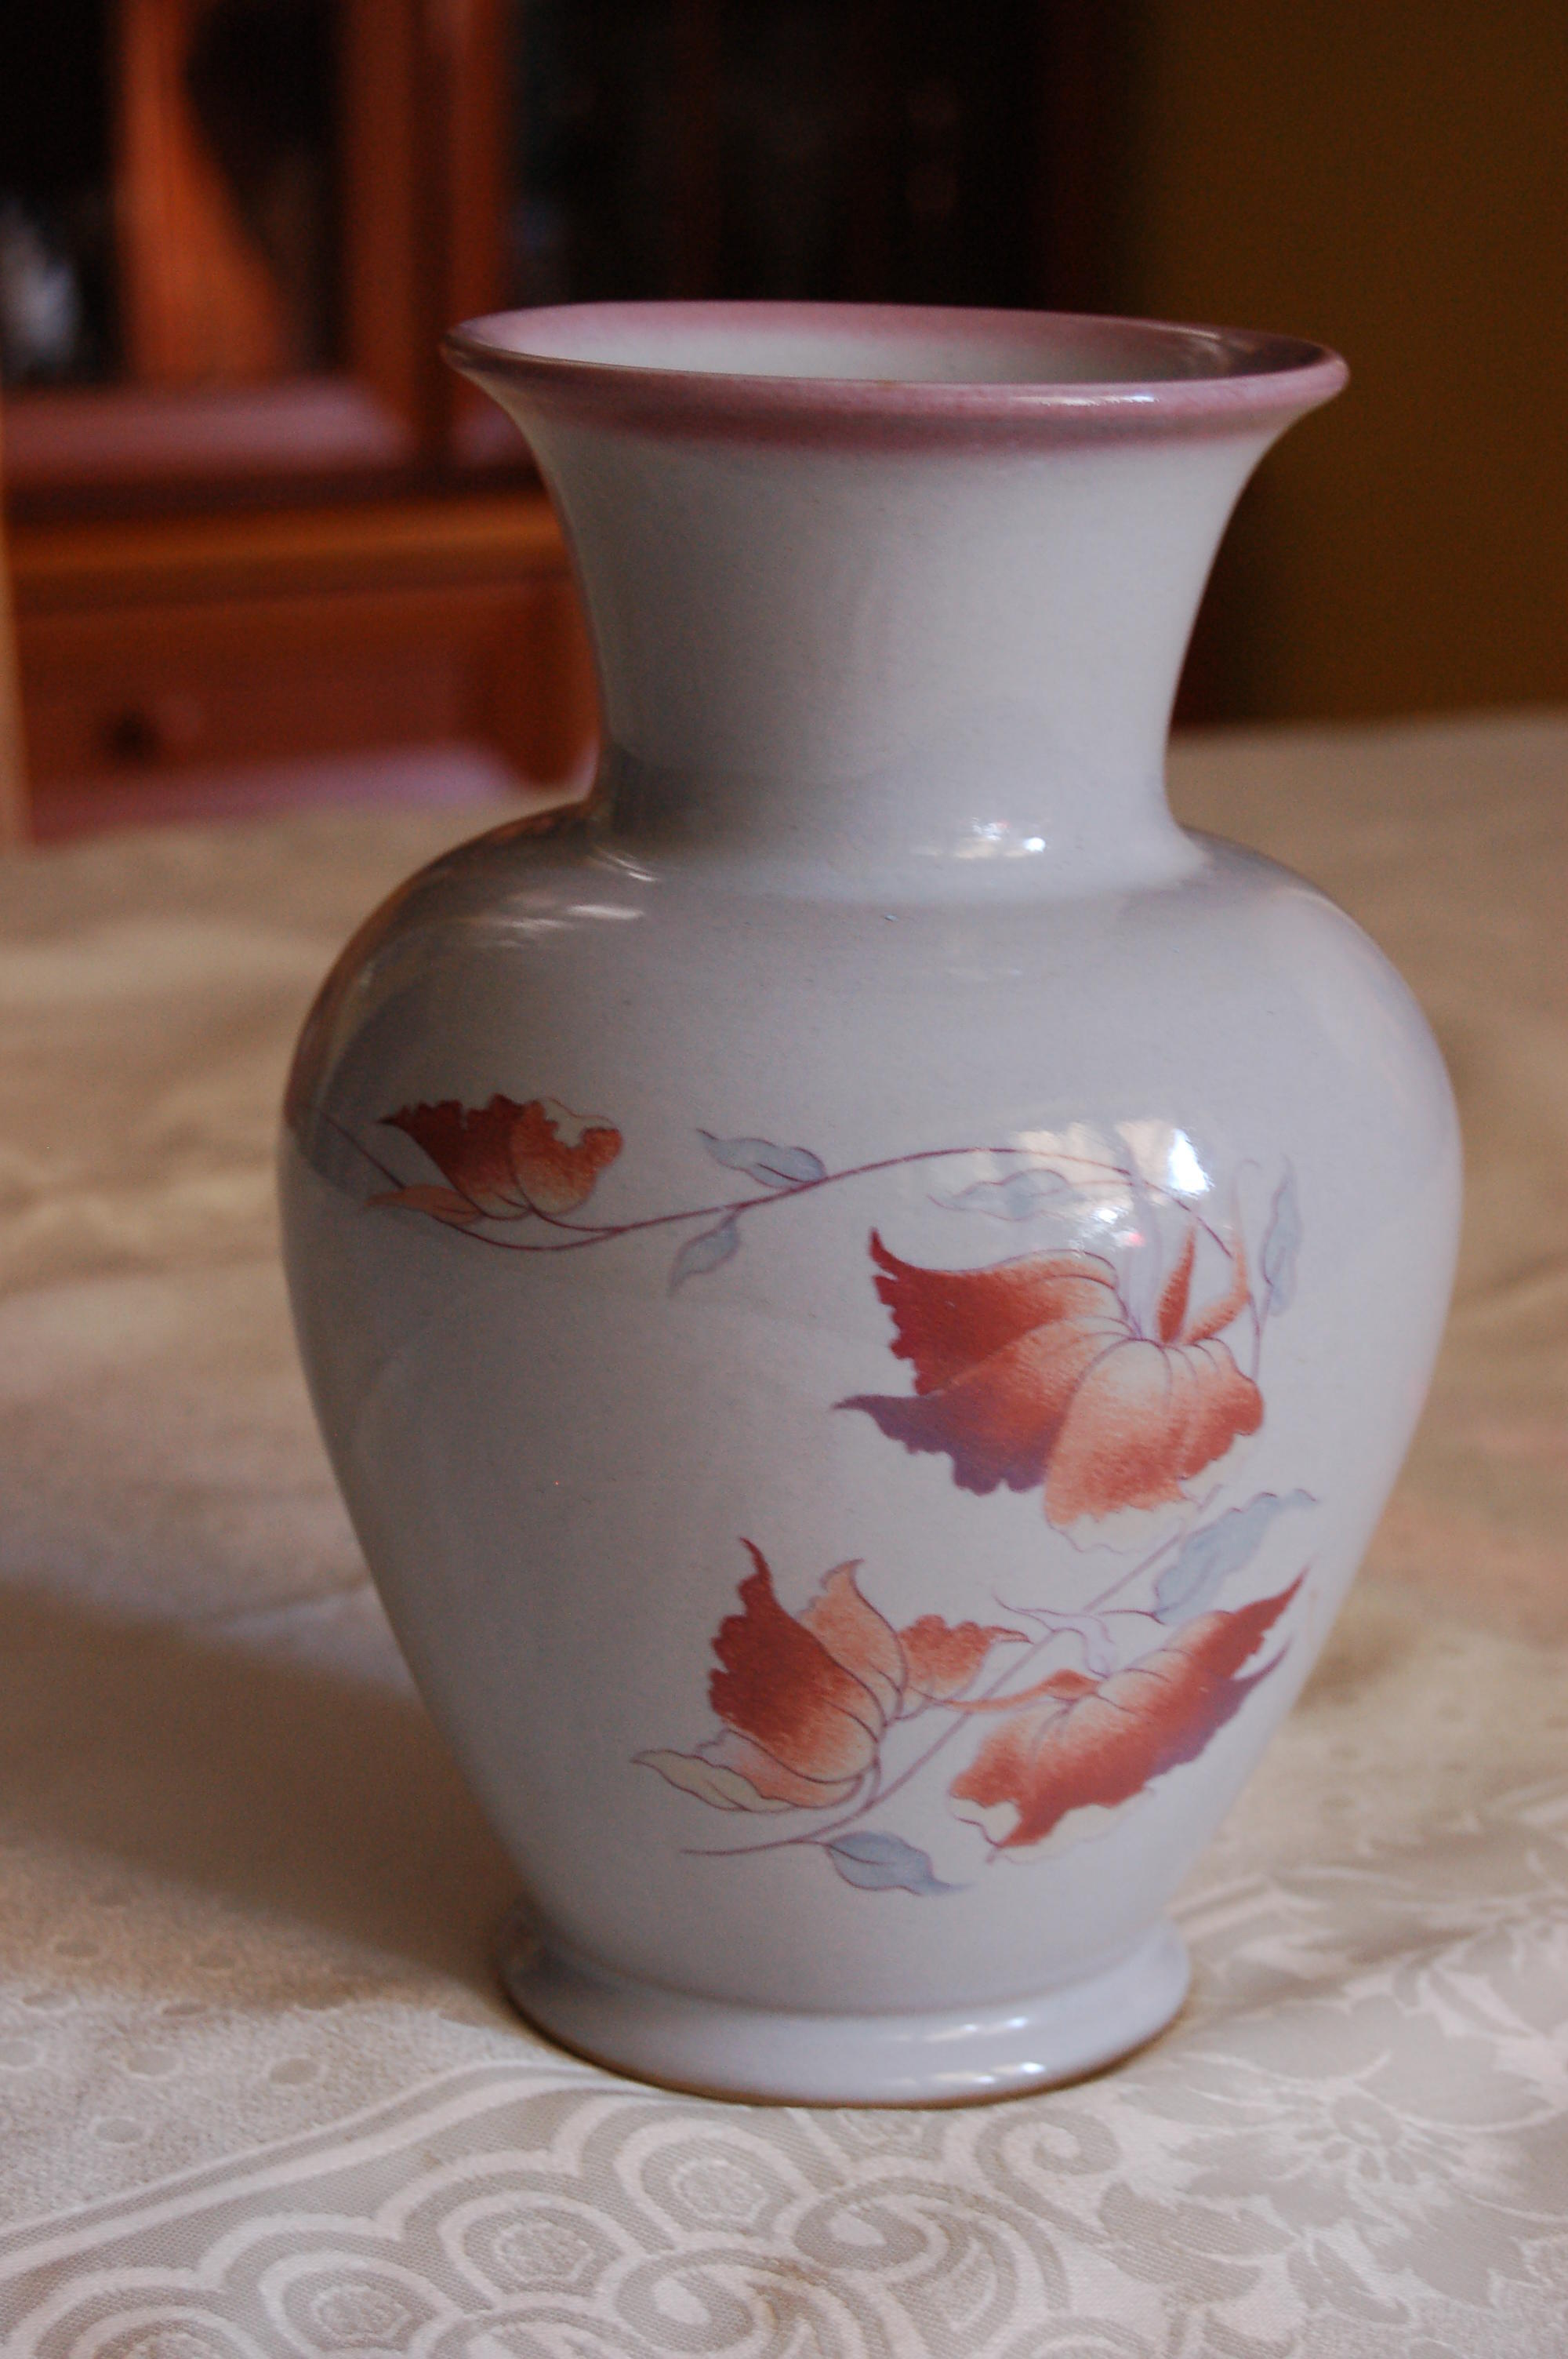 Lovely Denby Twilight Vase, in Perfect Condition & Antique